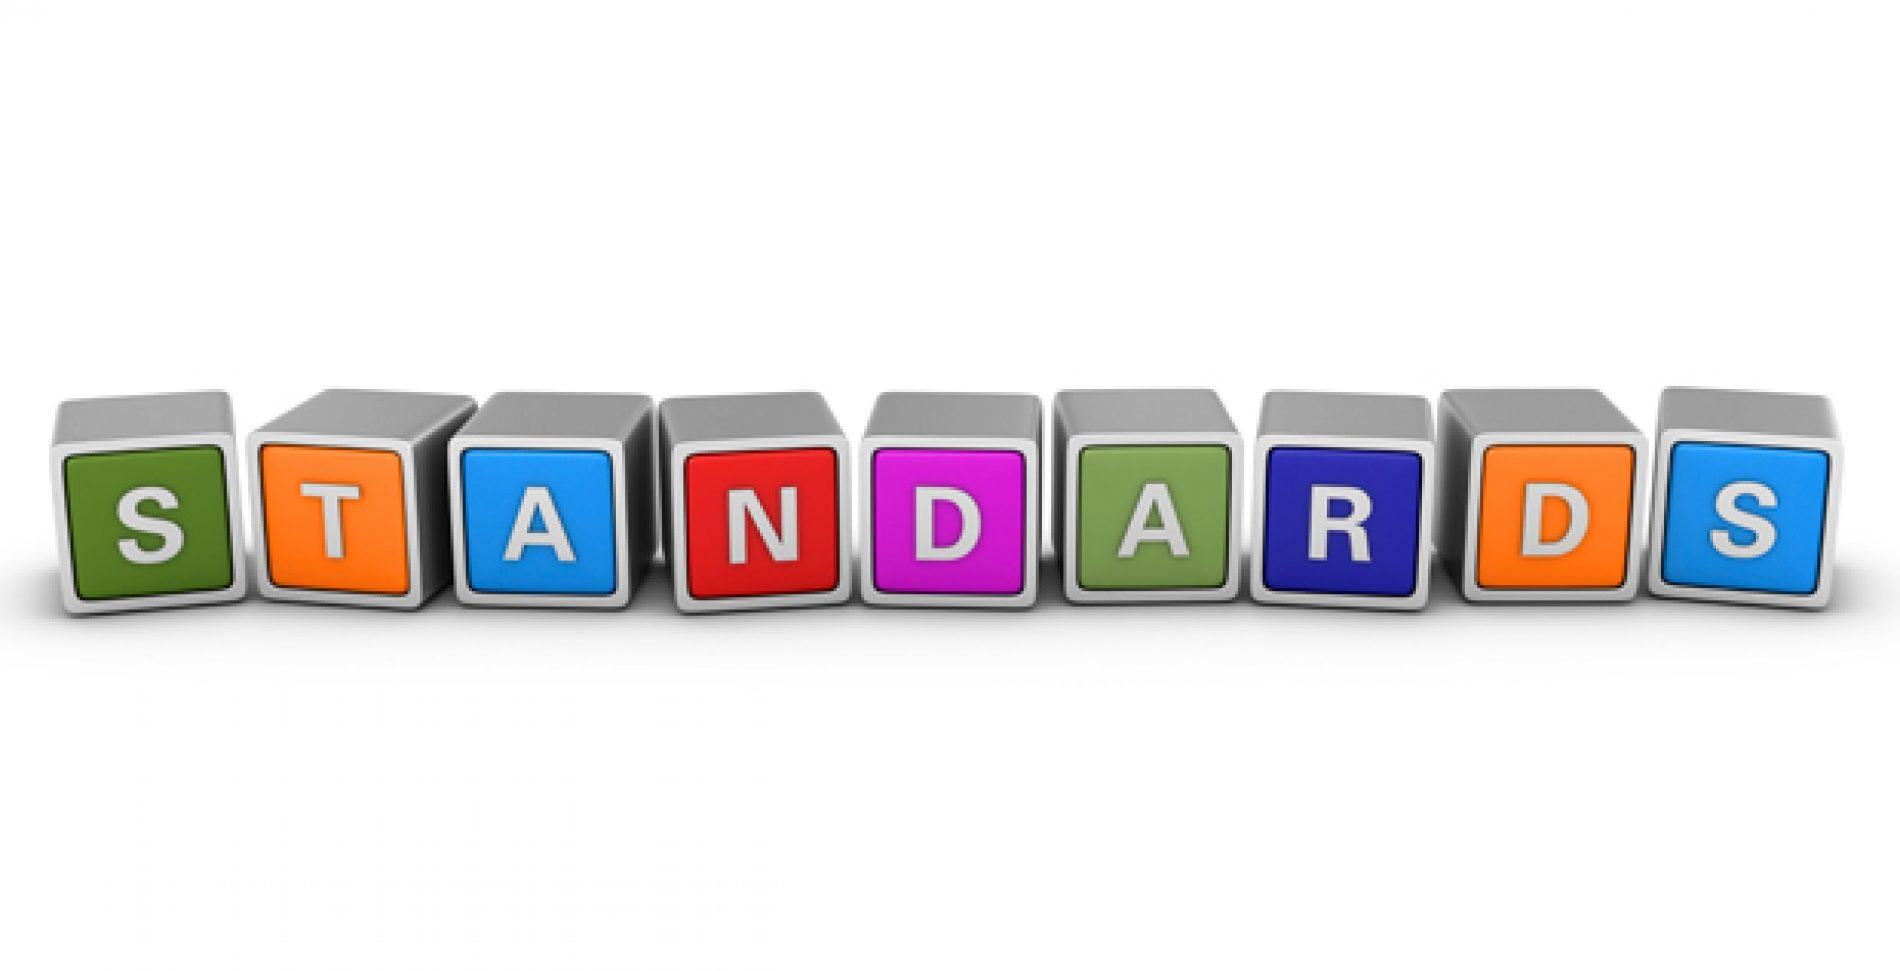 Why Creating Standards for Your Shop is a Good Idea